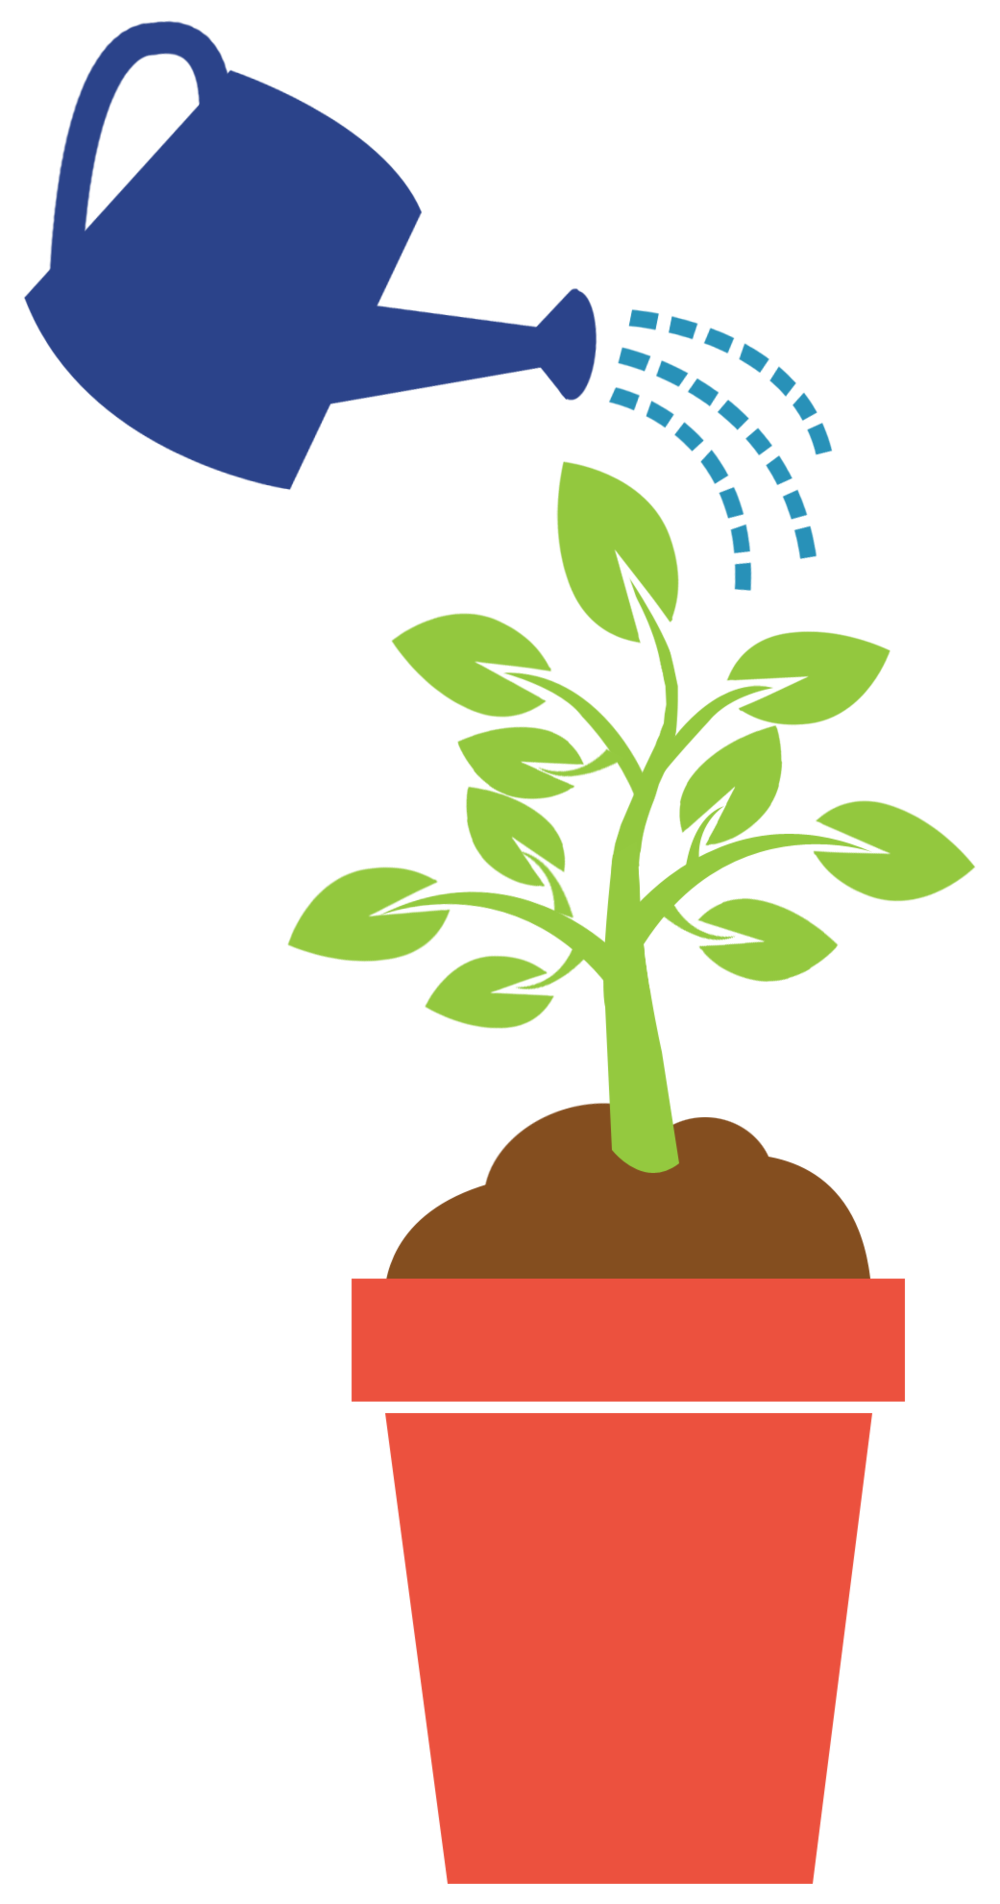 service-grow-icon-lrg.png